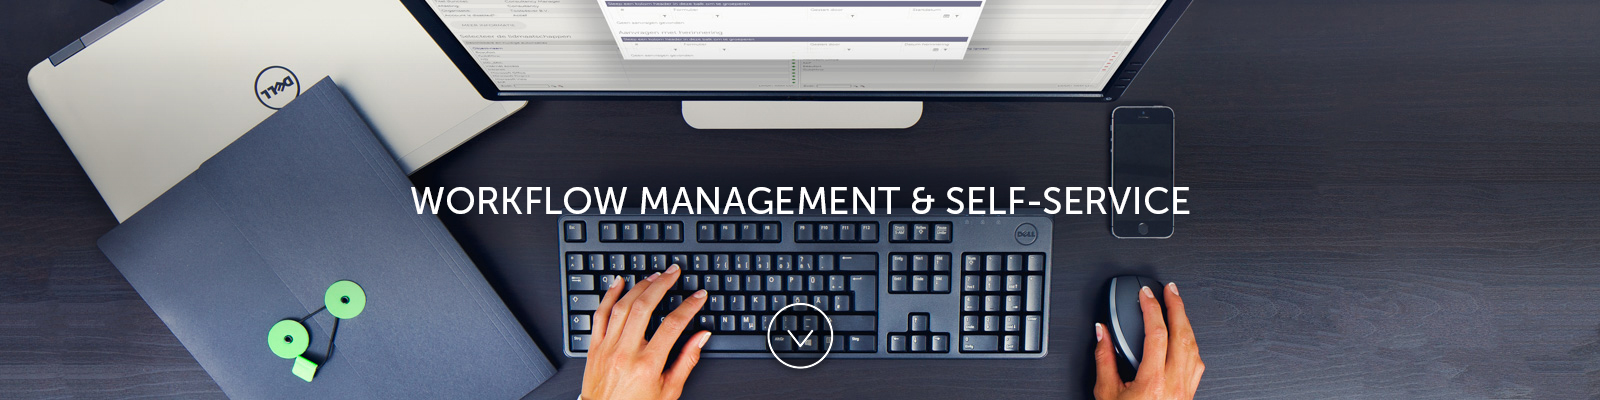 Workflow Management & Self-Service (WFM)